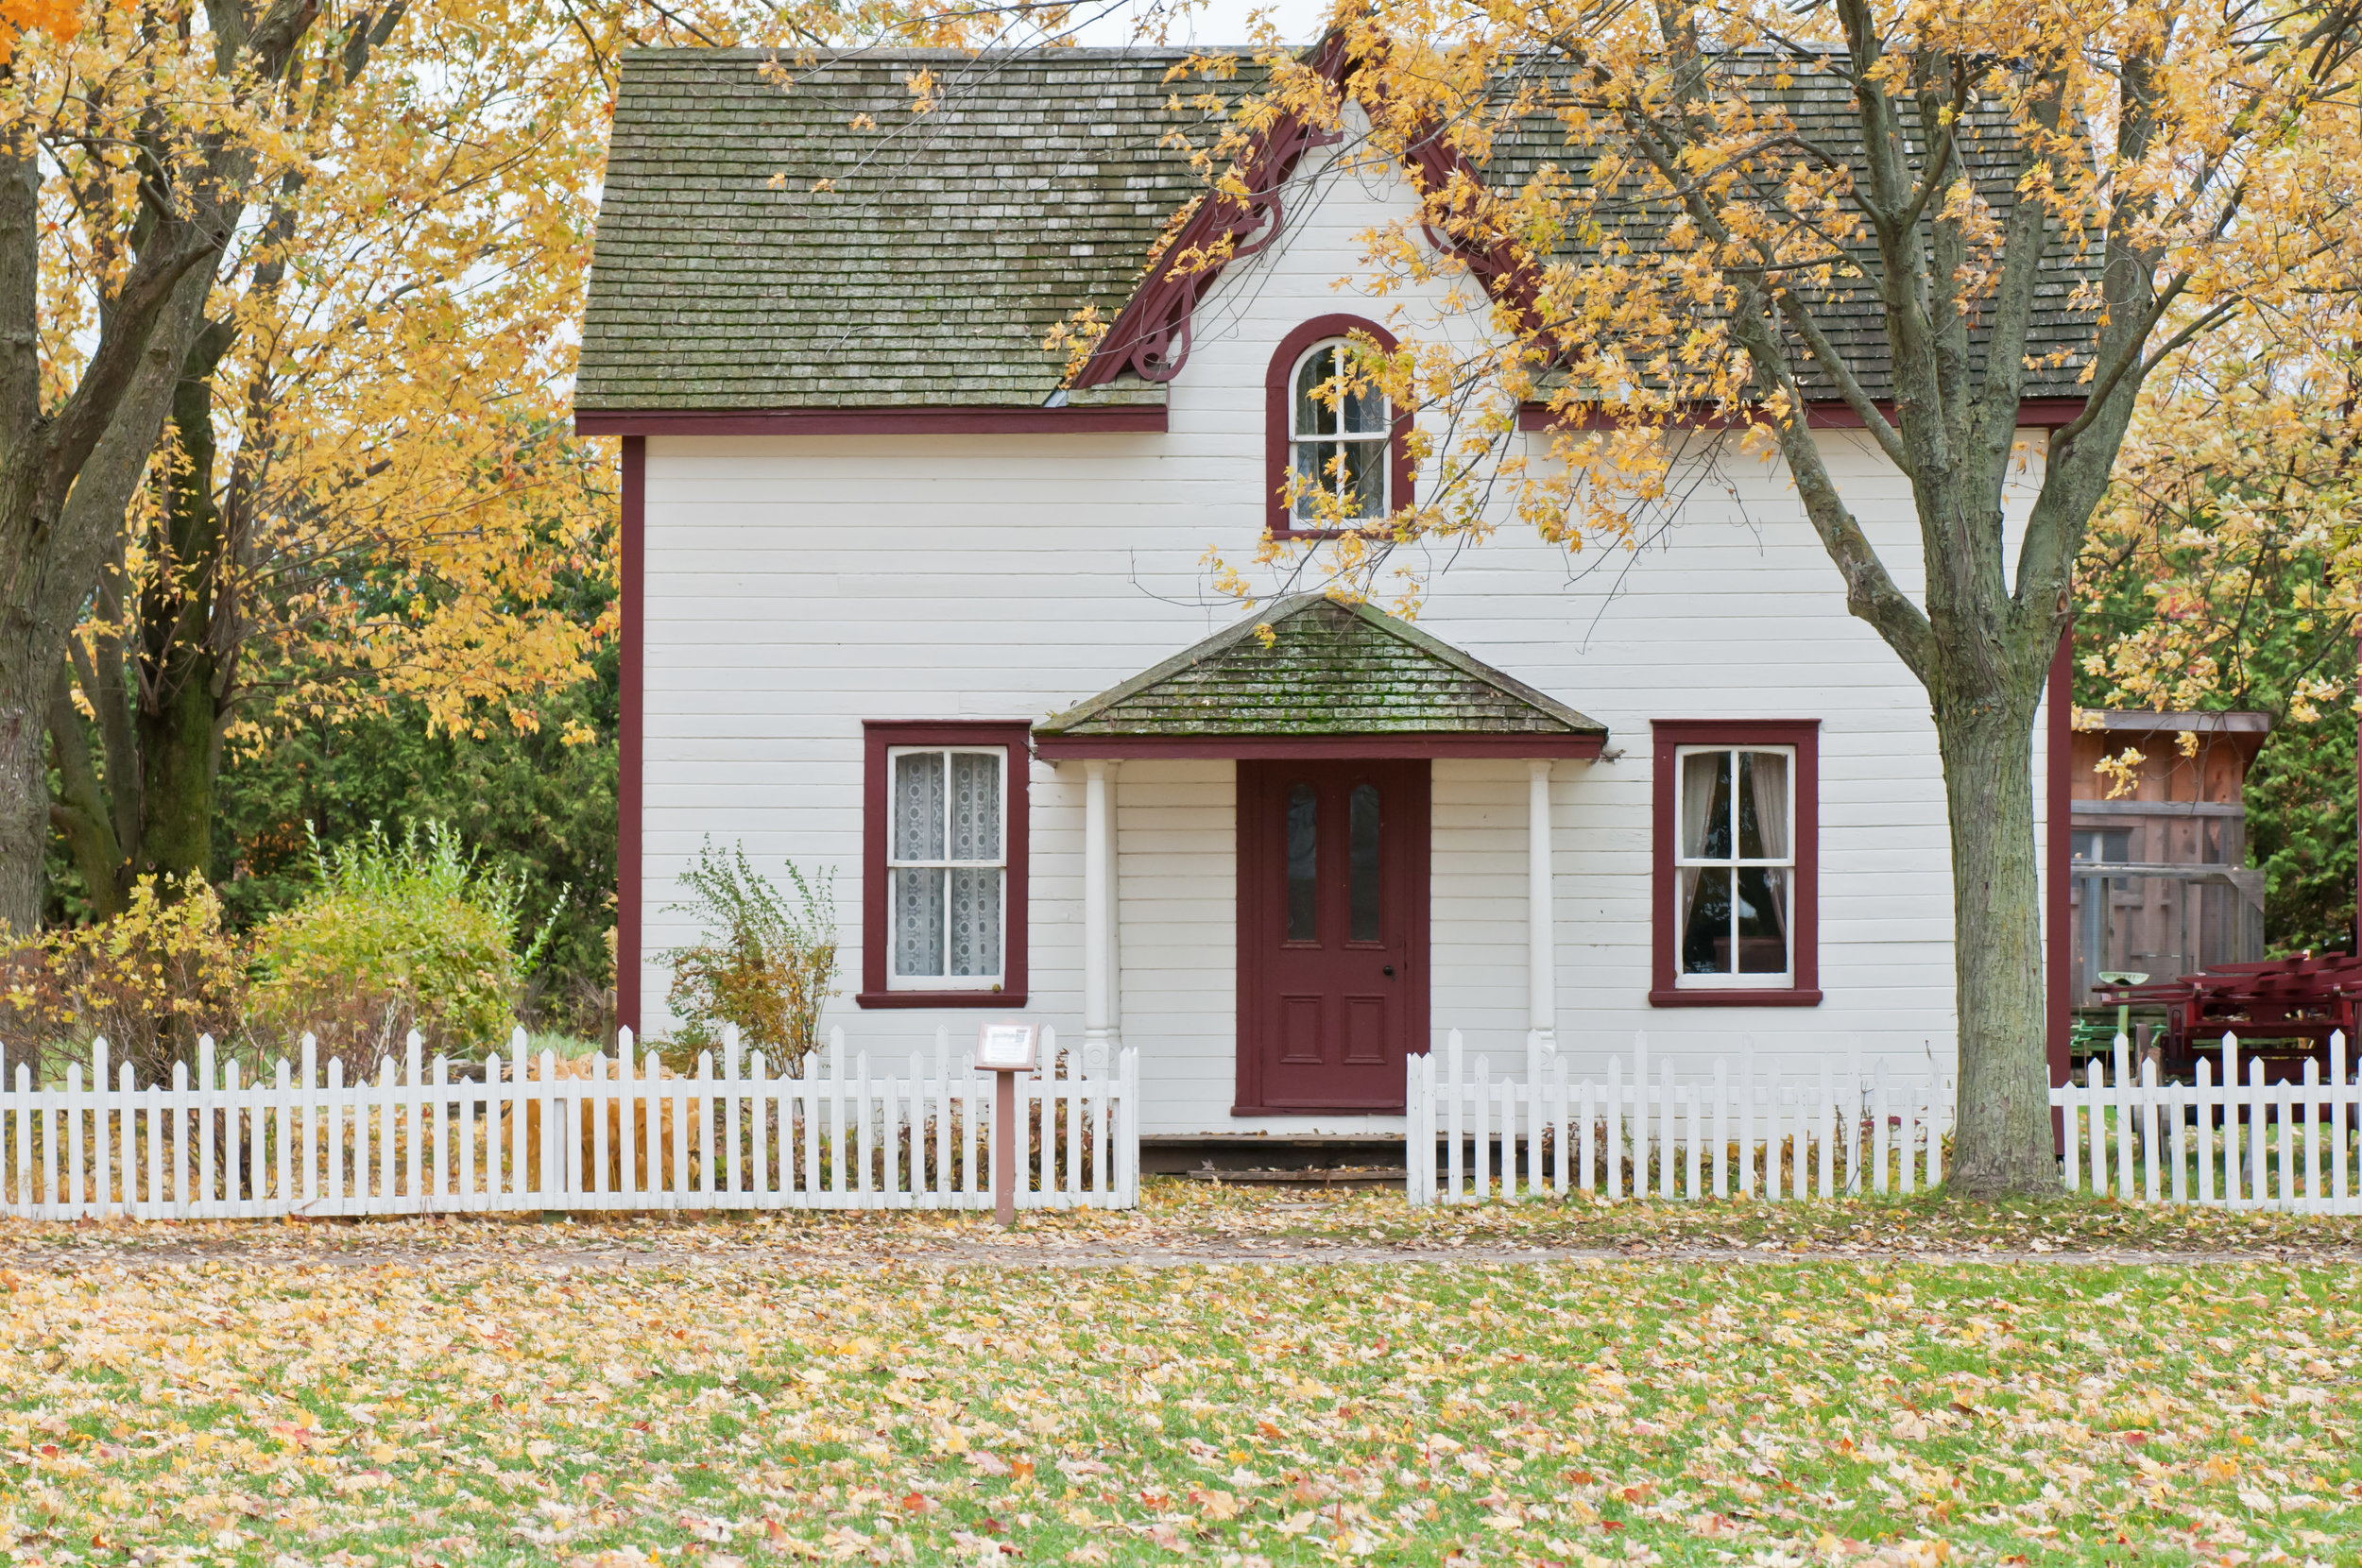 should i, as a seller, get a home inspection? -